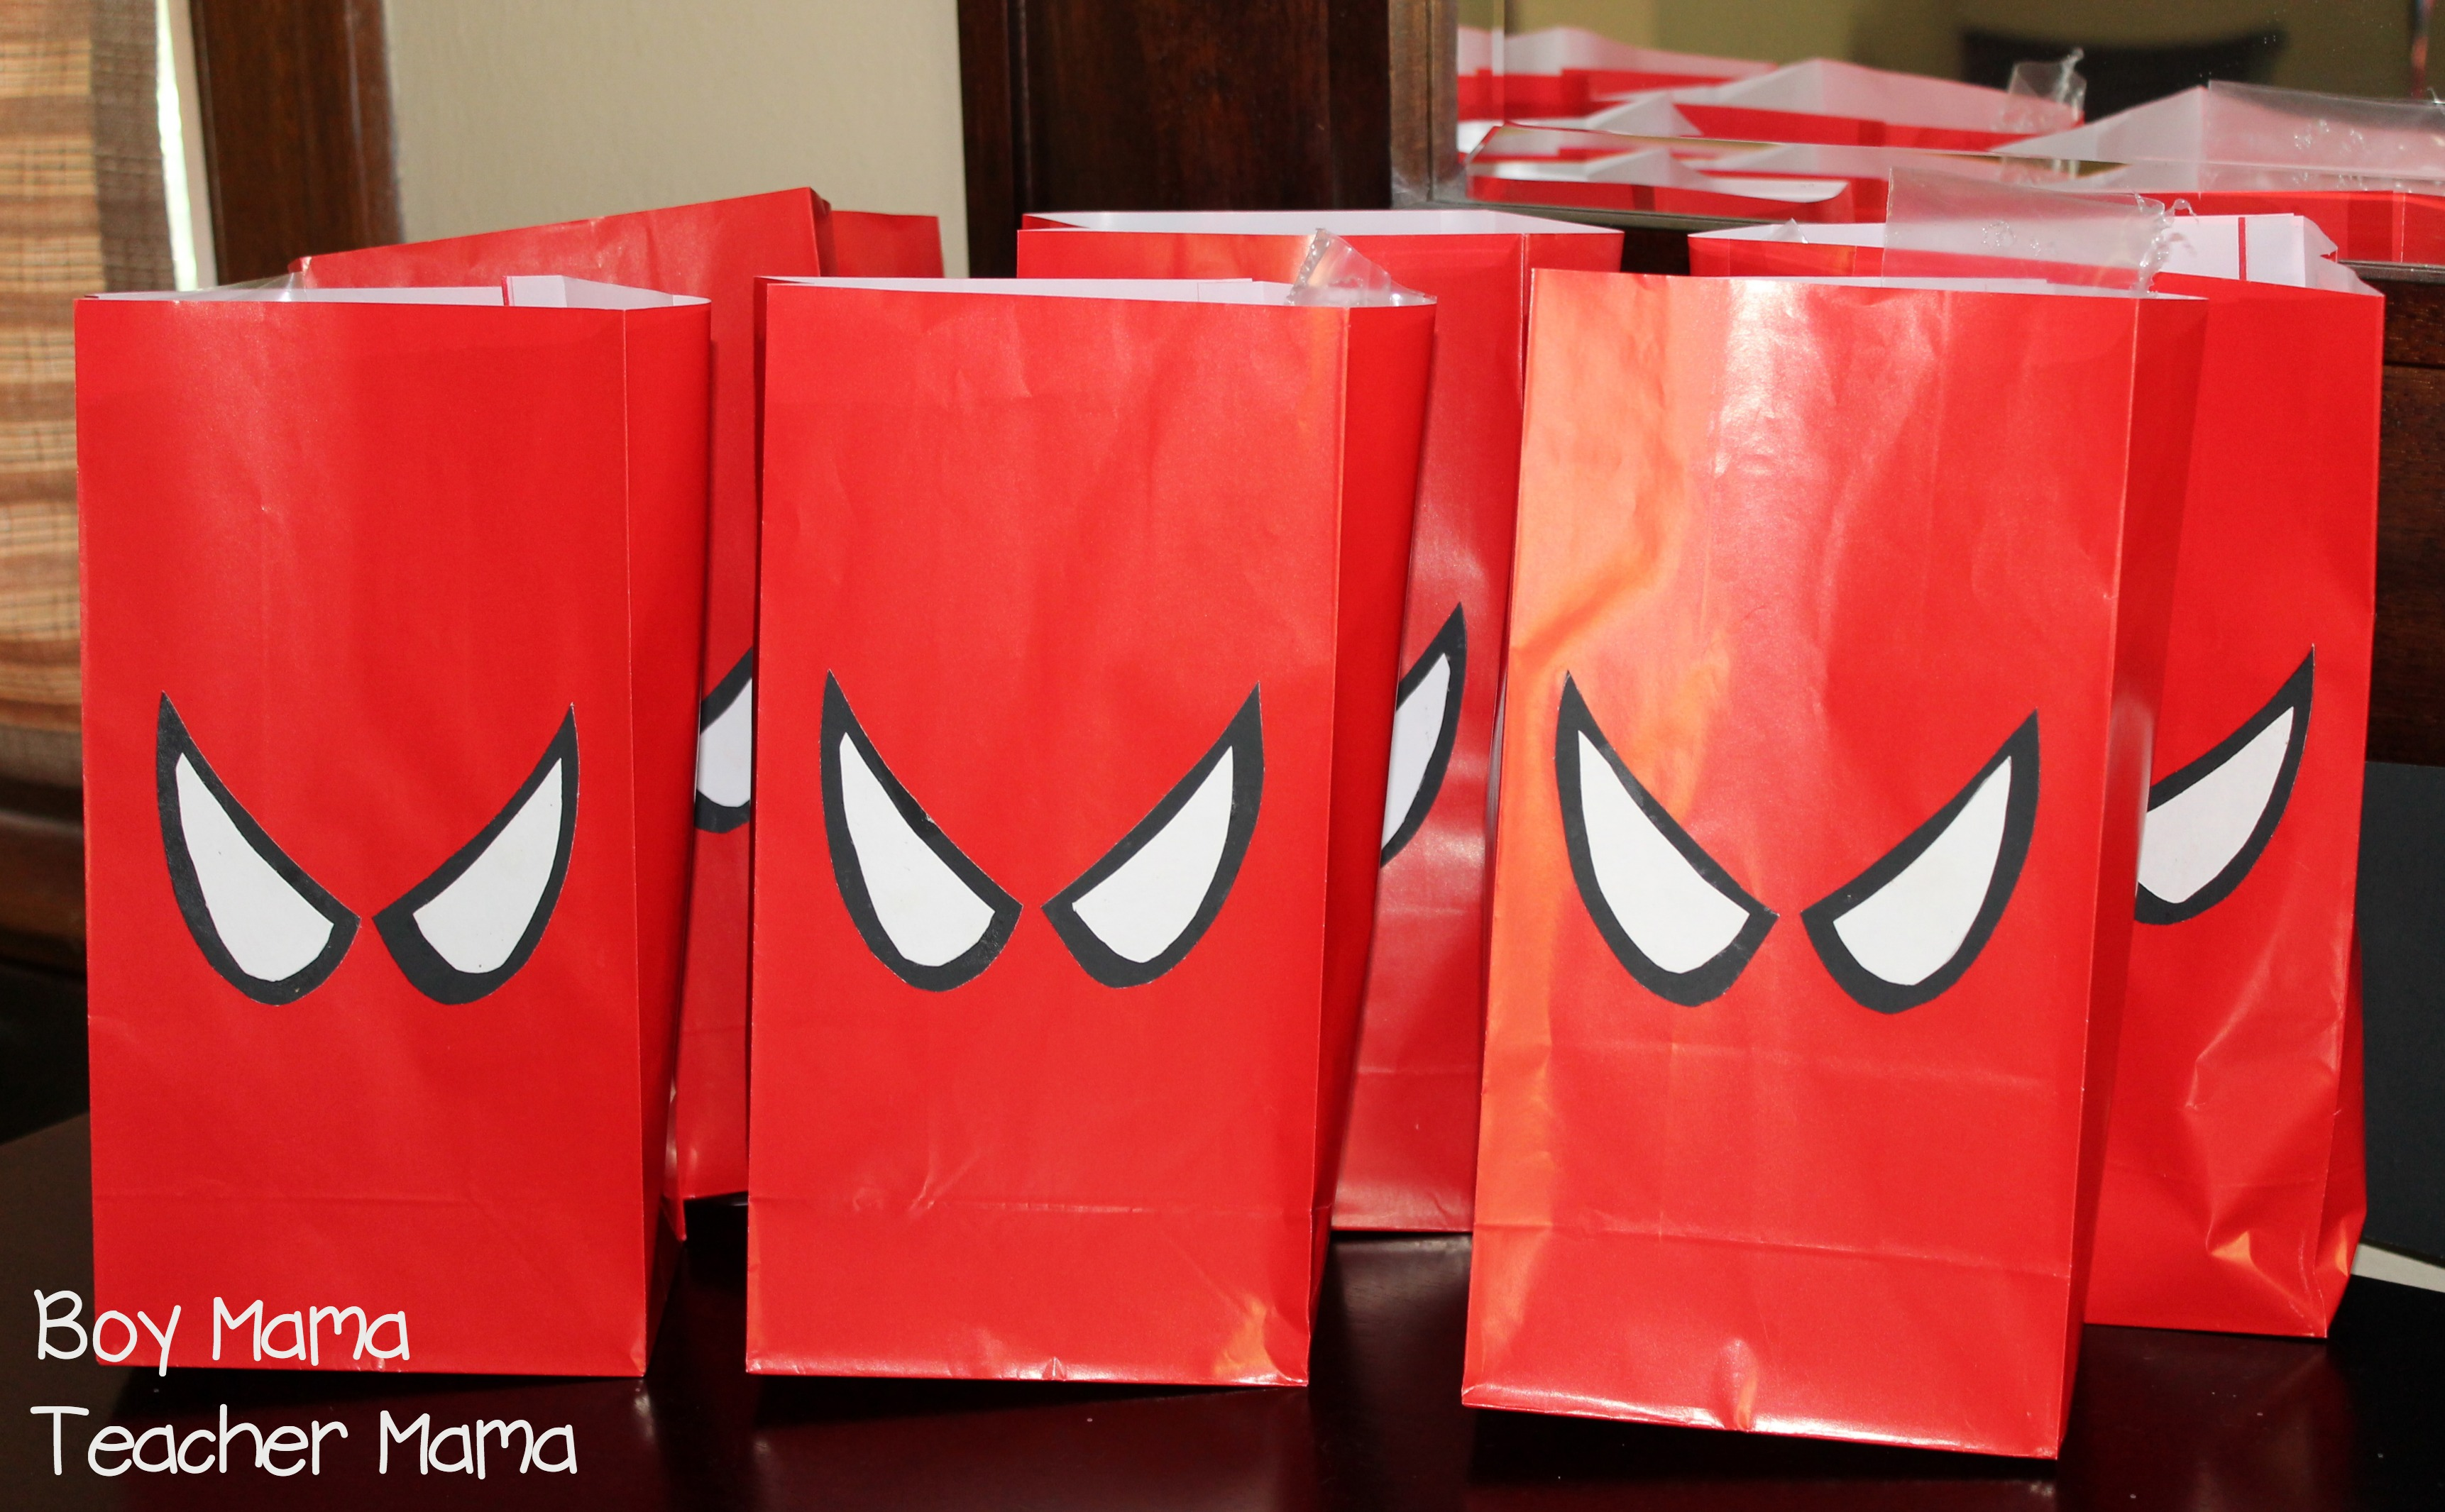 Boy Mama: Spiderman Birthday Party - Boy Mama Teacher Mama